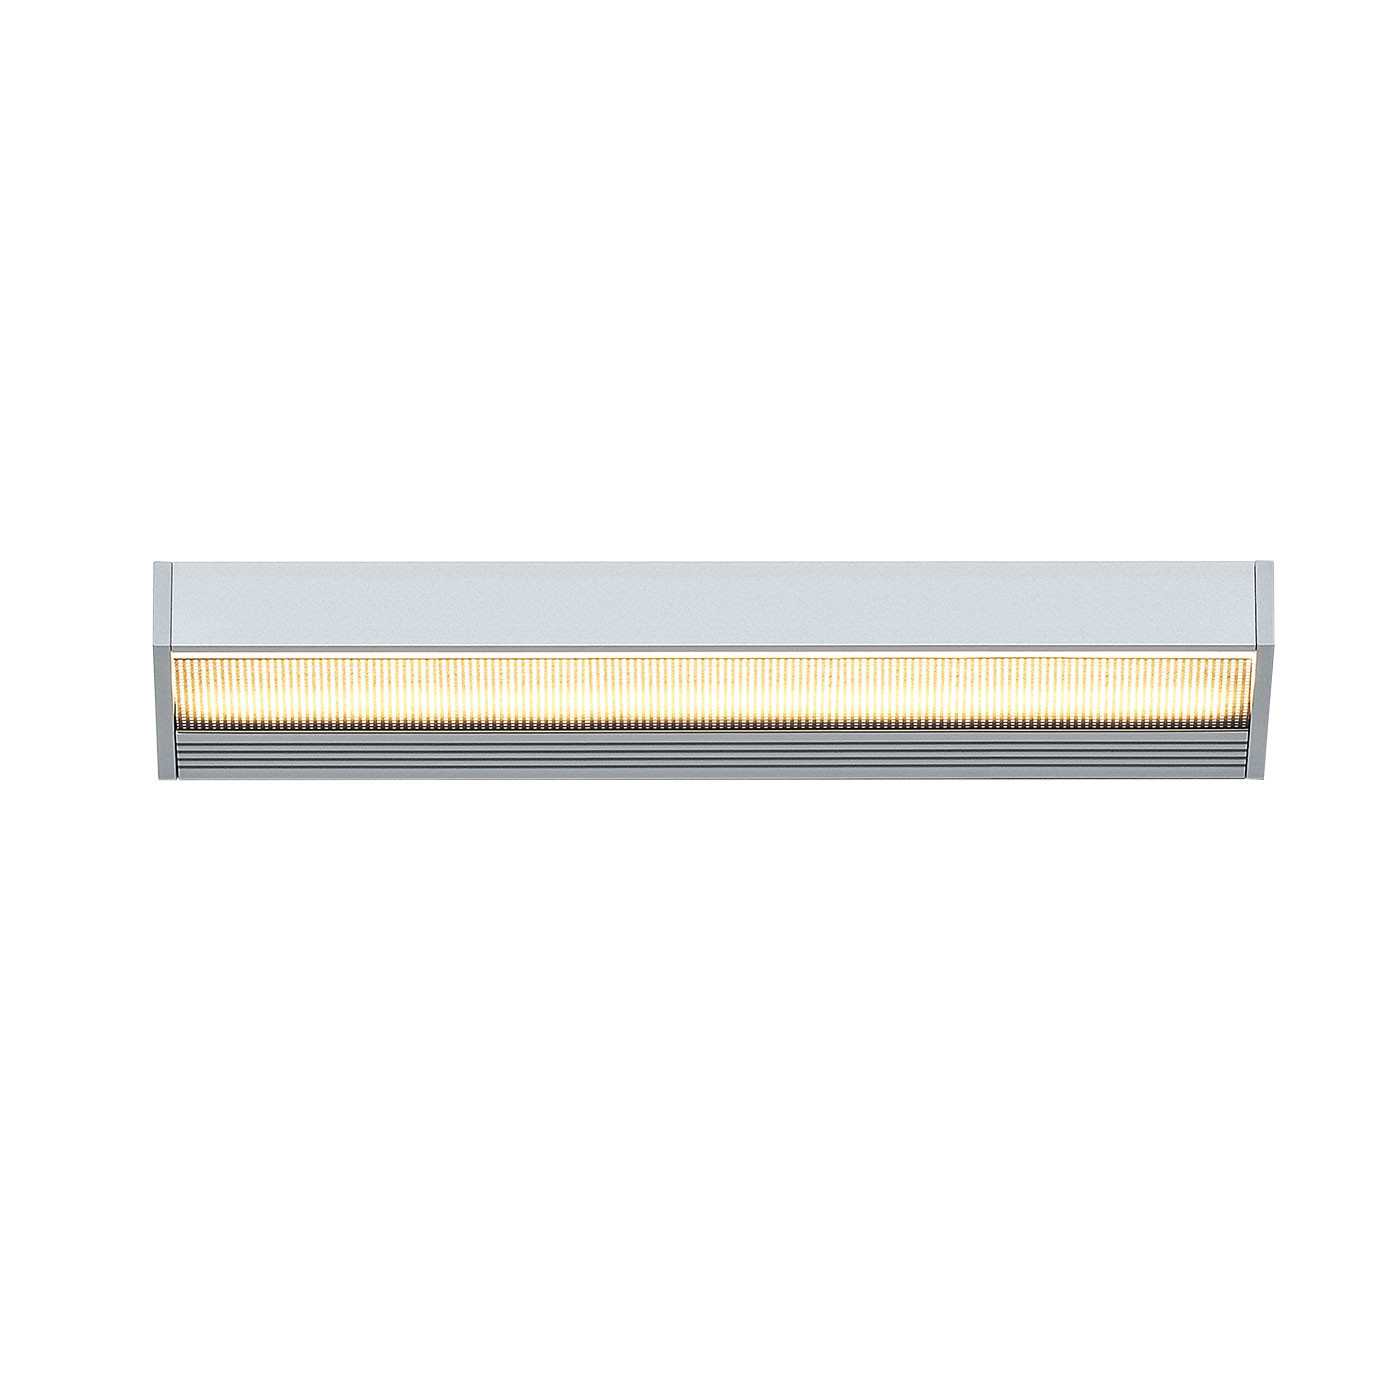 Serien Lighting SML² Wall 300, 2700K